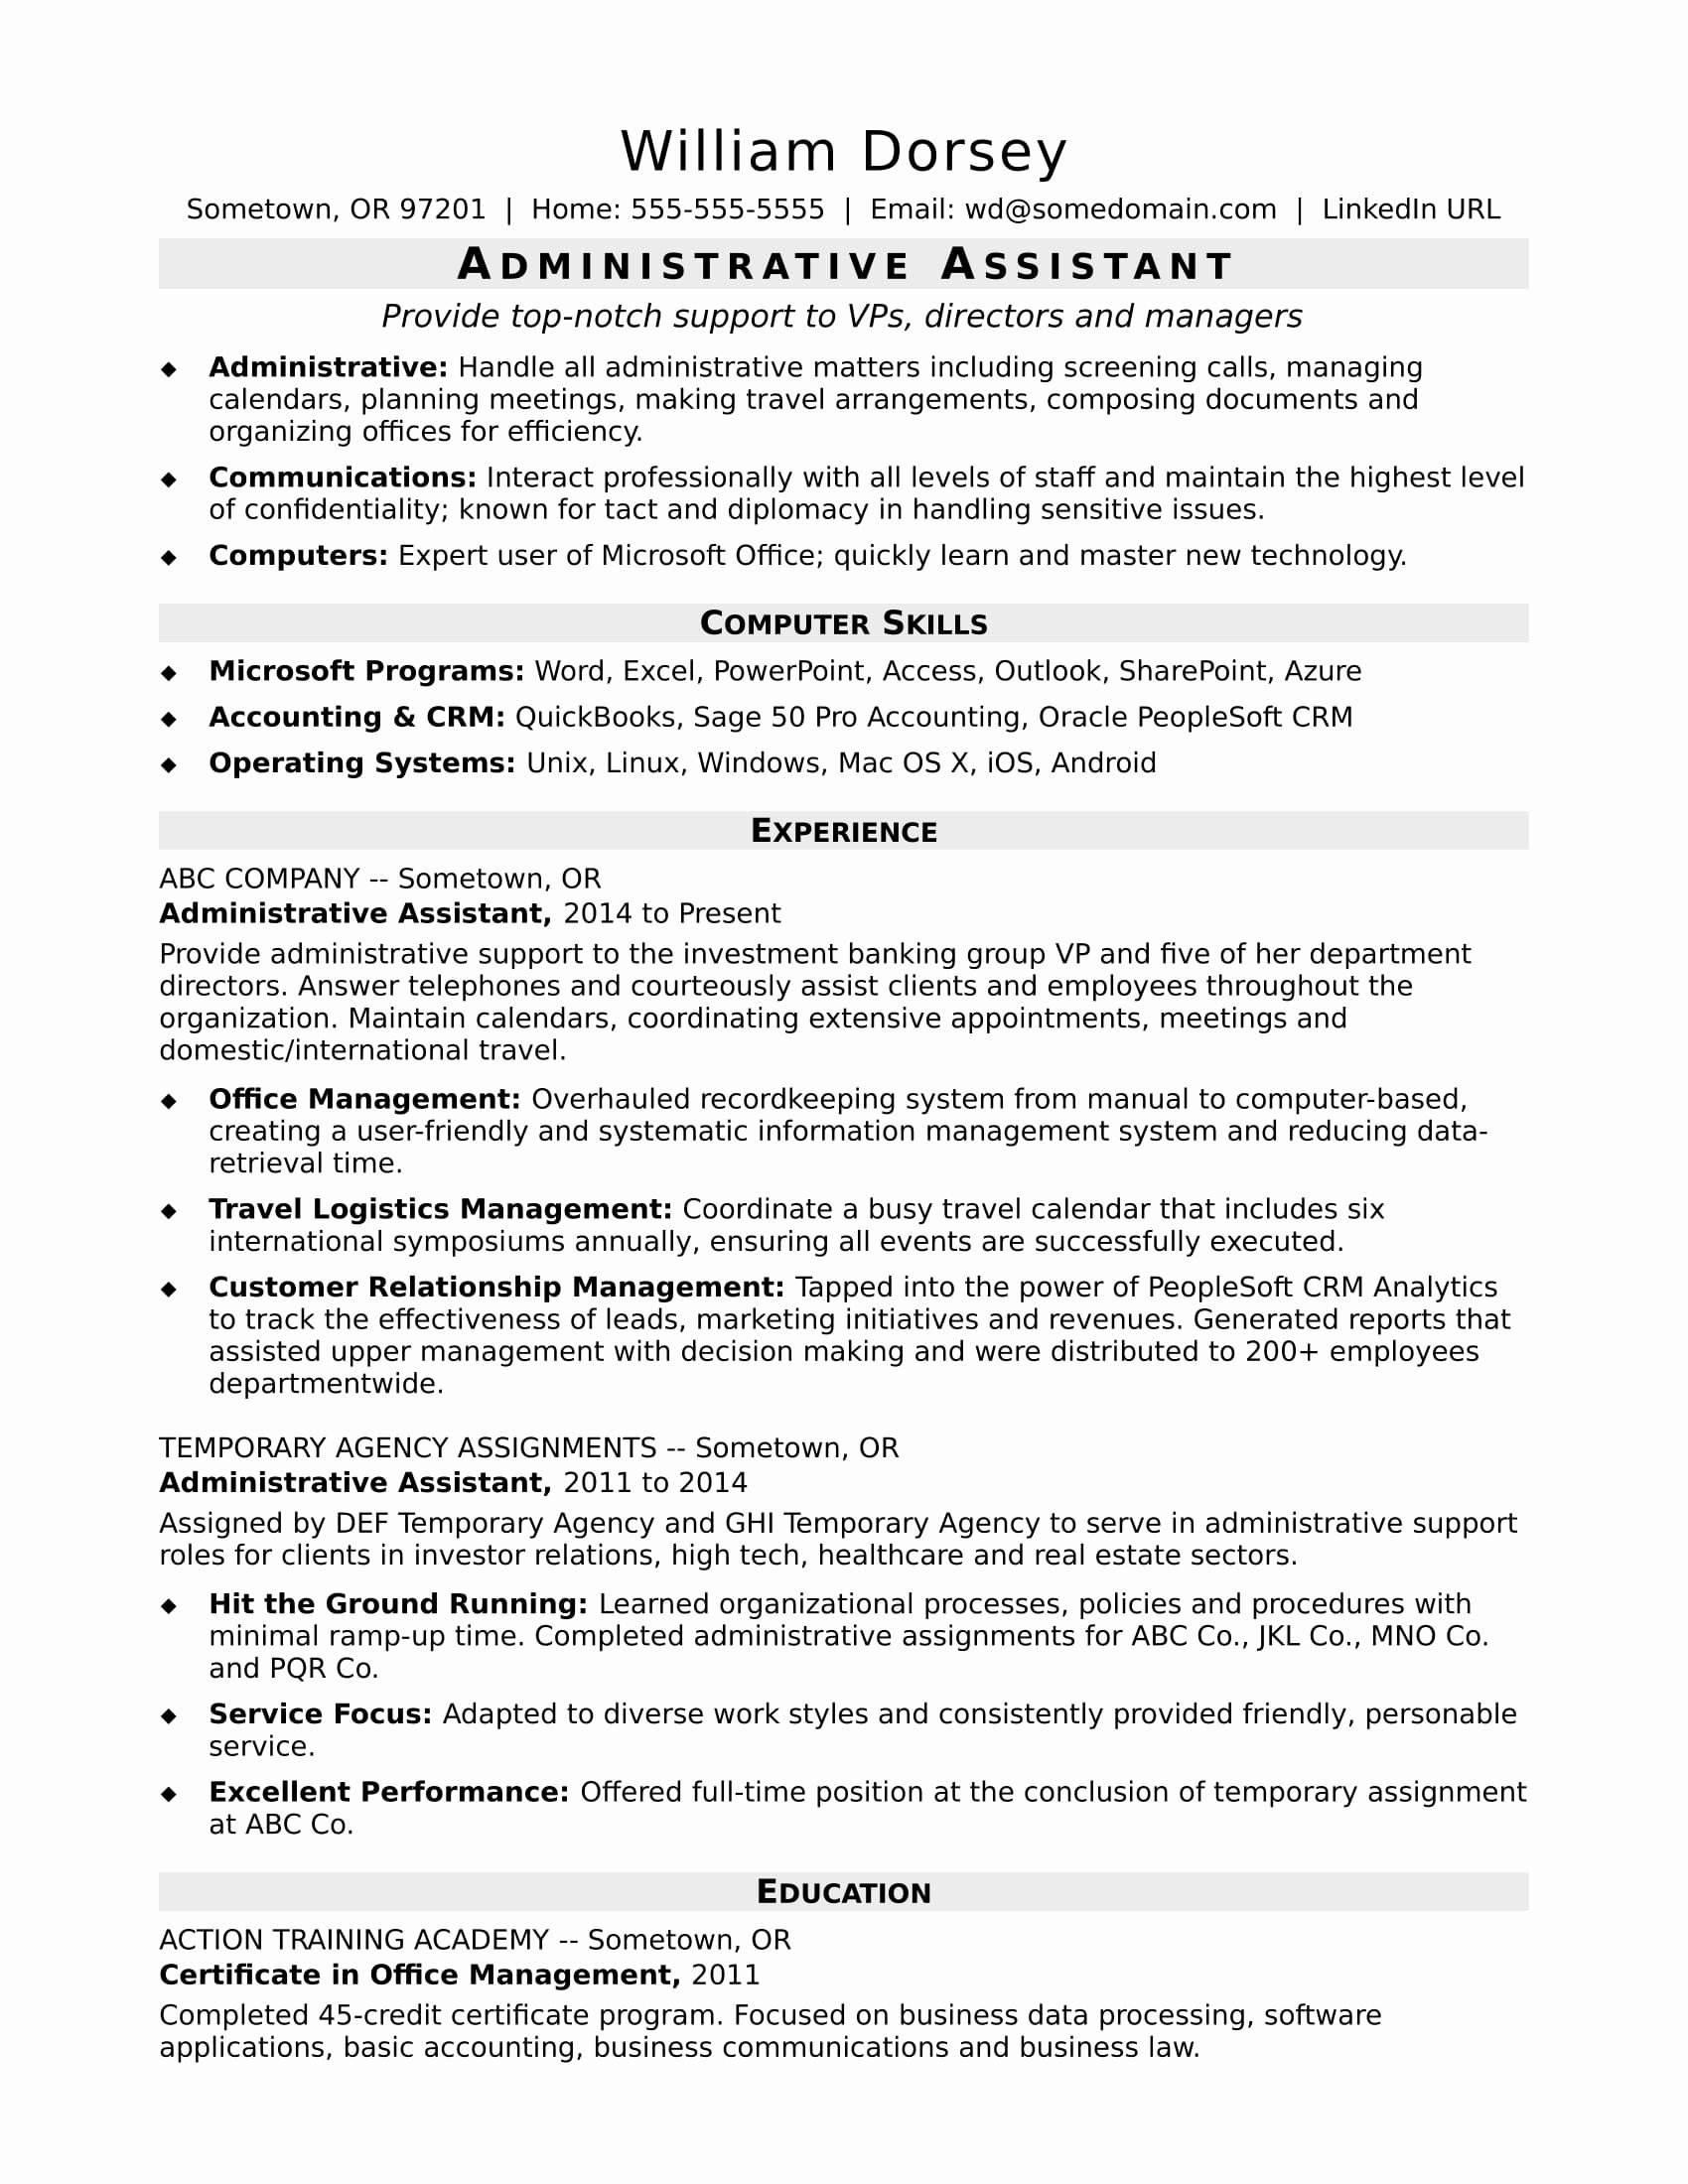 Administrative assistant Resume Objective Beautiful Midlevel Administrative assistant Resume Sample